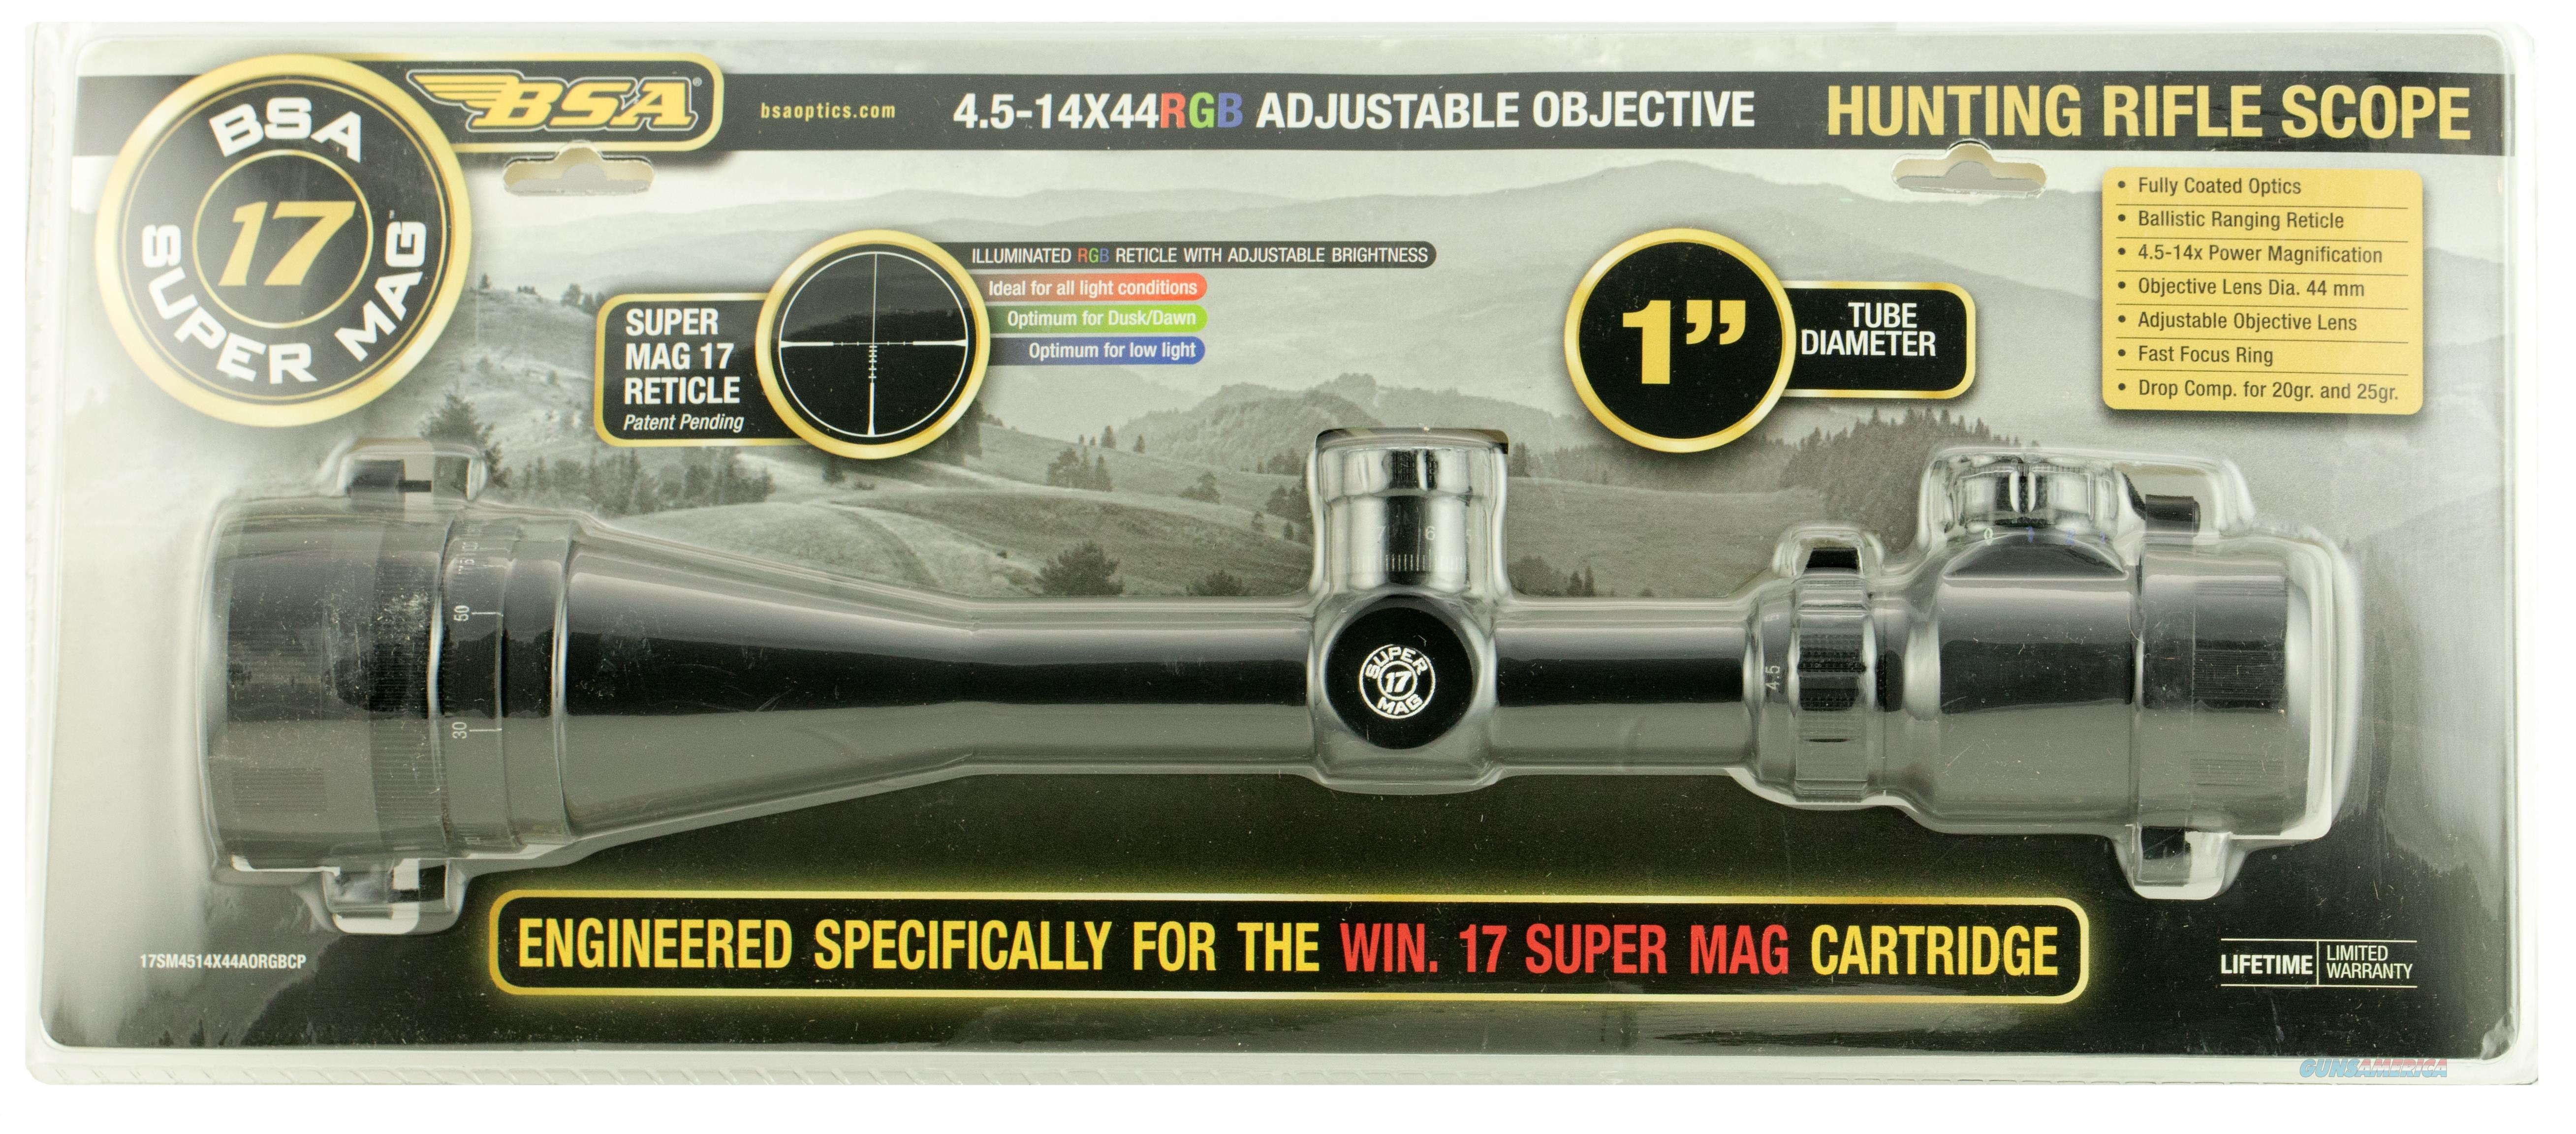 "Bsa 17Sm4514x44a 17 Super Mag 4.5-14X 44Mm Ao Obj 16.6-4.8 Ft @ 100 Yds Fov 1"" Tube Black Matte Illuminated Ballistic Ranging Rgb 17SM4514X44A  Non-Guns > Scopes/Mounts/Rings & Optics > Rifle Scopes > Variable Focal Length"